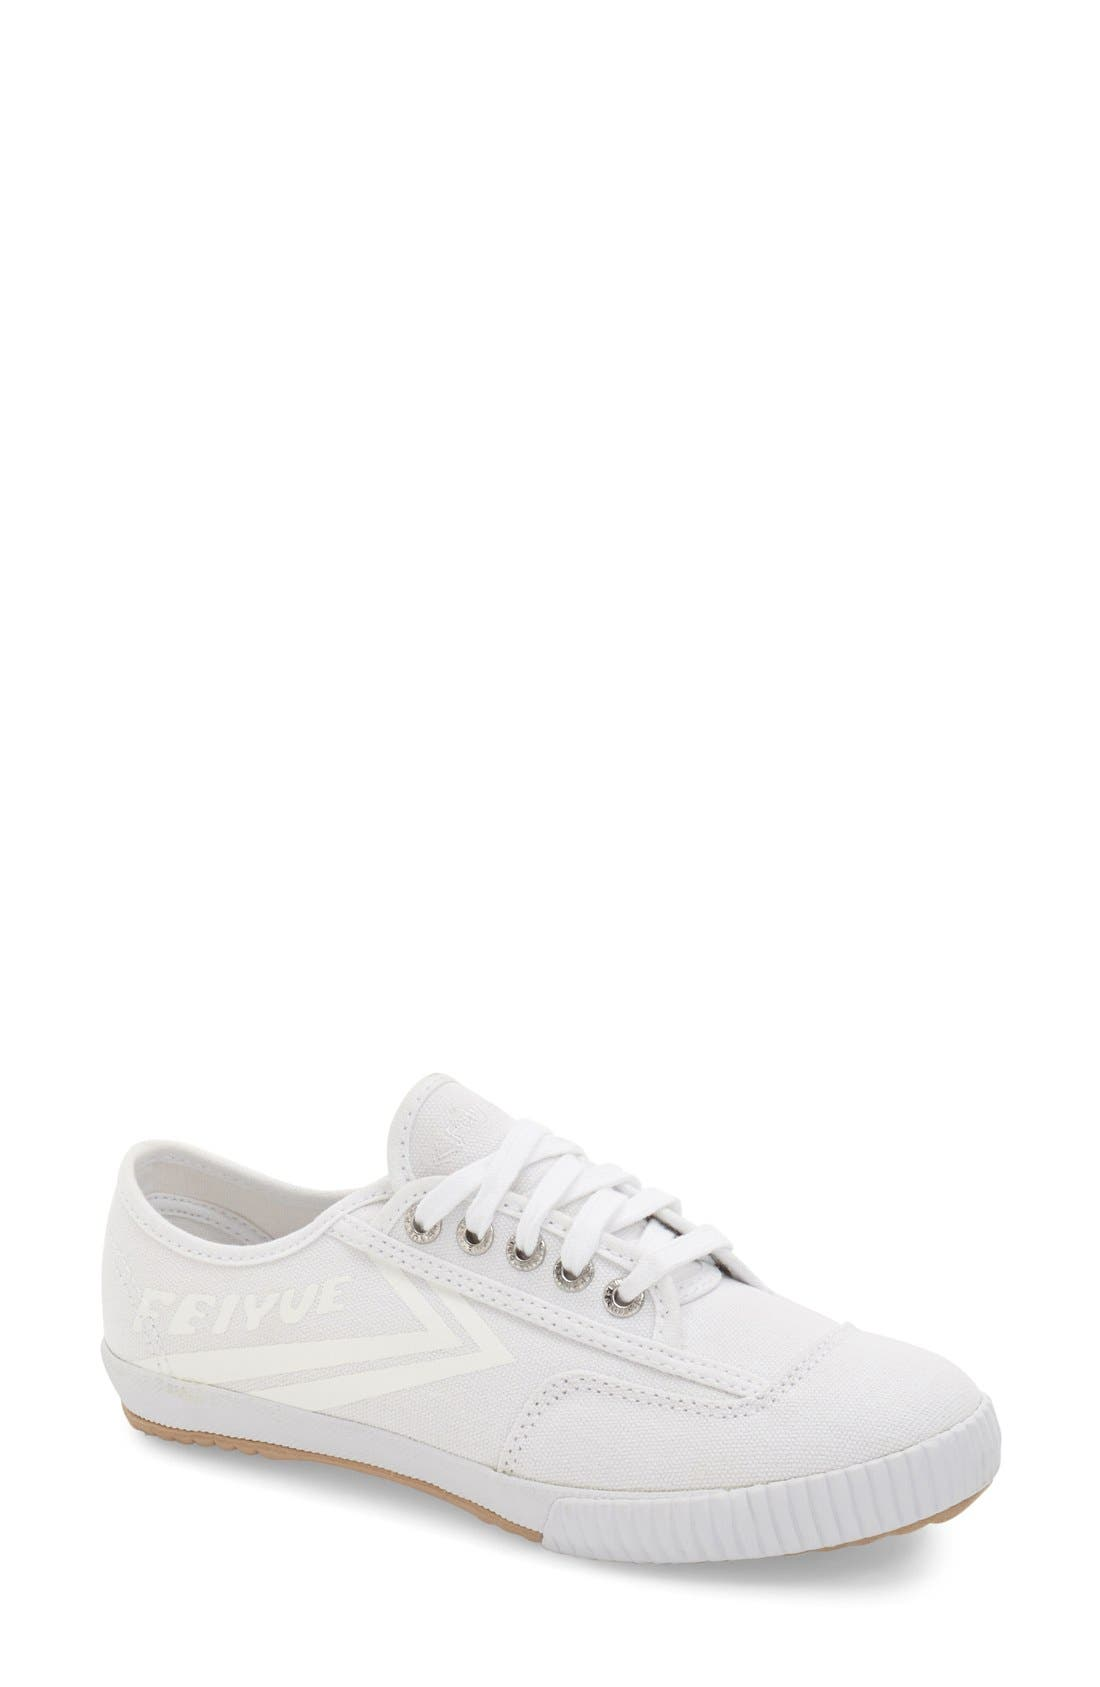 FEIYUE. 'Fe Lo Plain' Canvas Sneaker